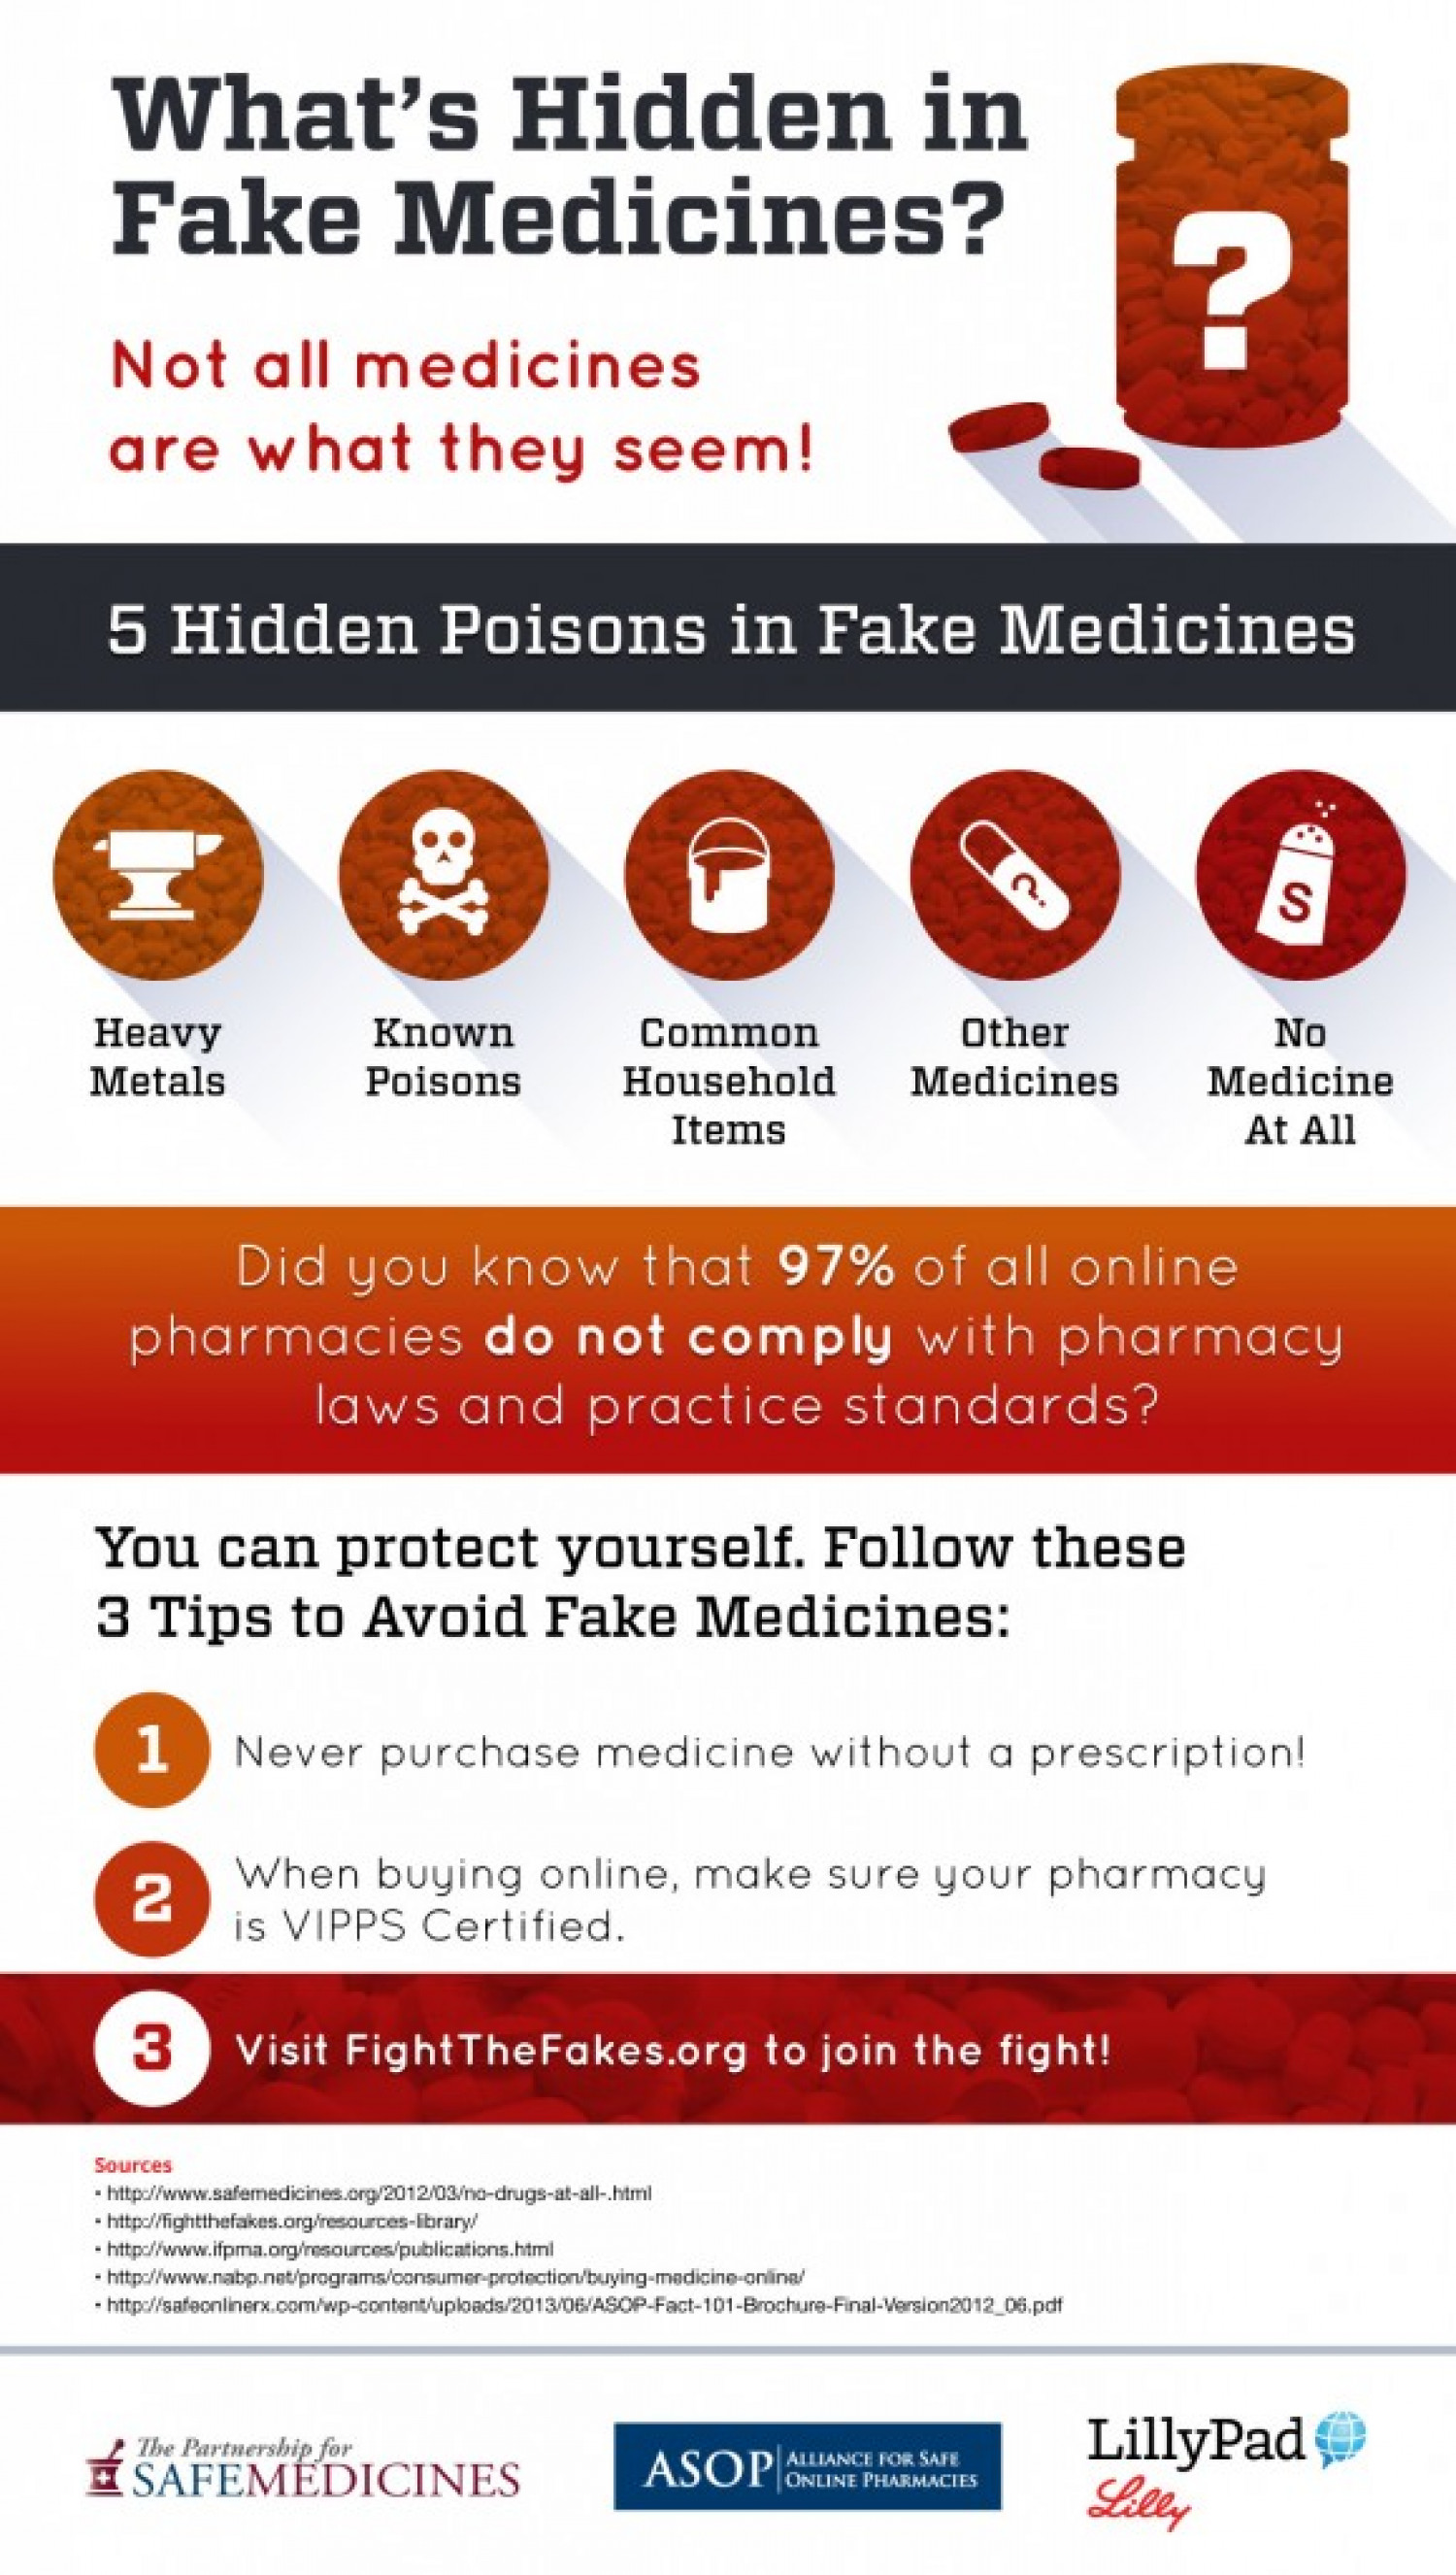 What's Hidden in Fake Medicines? Infographic